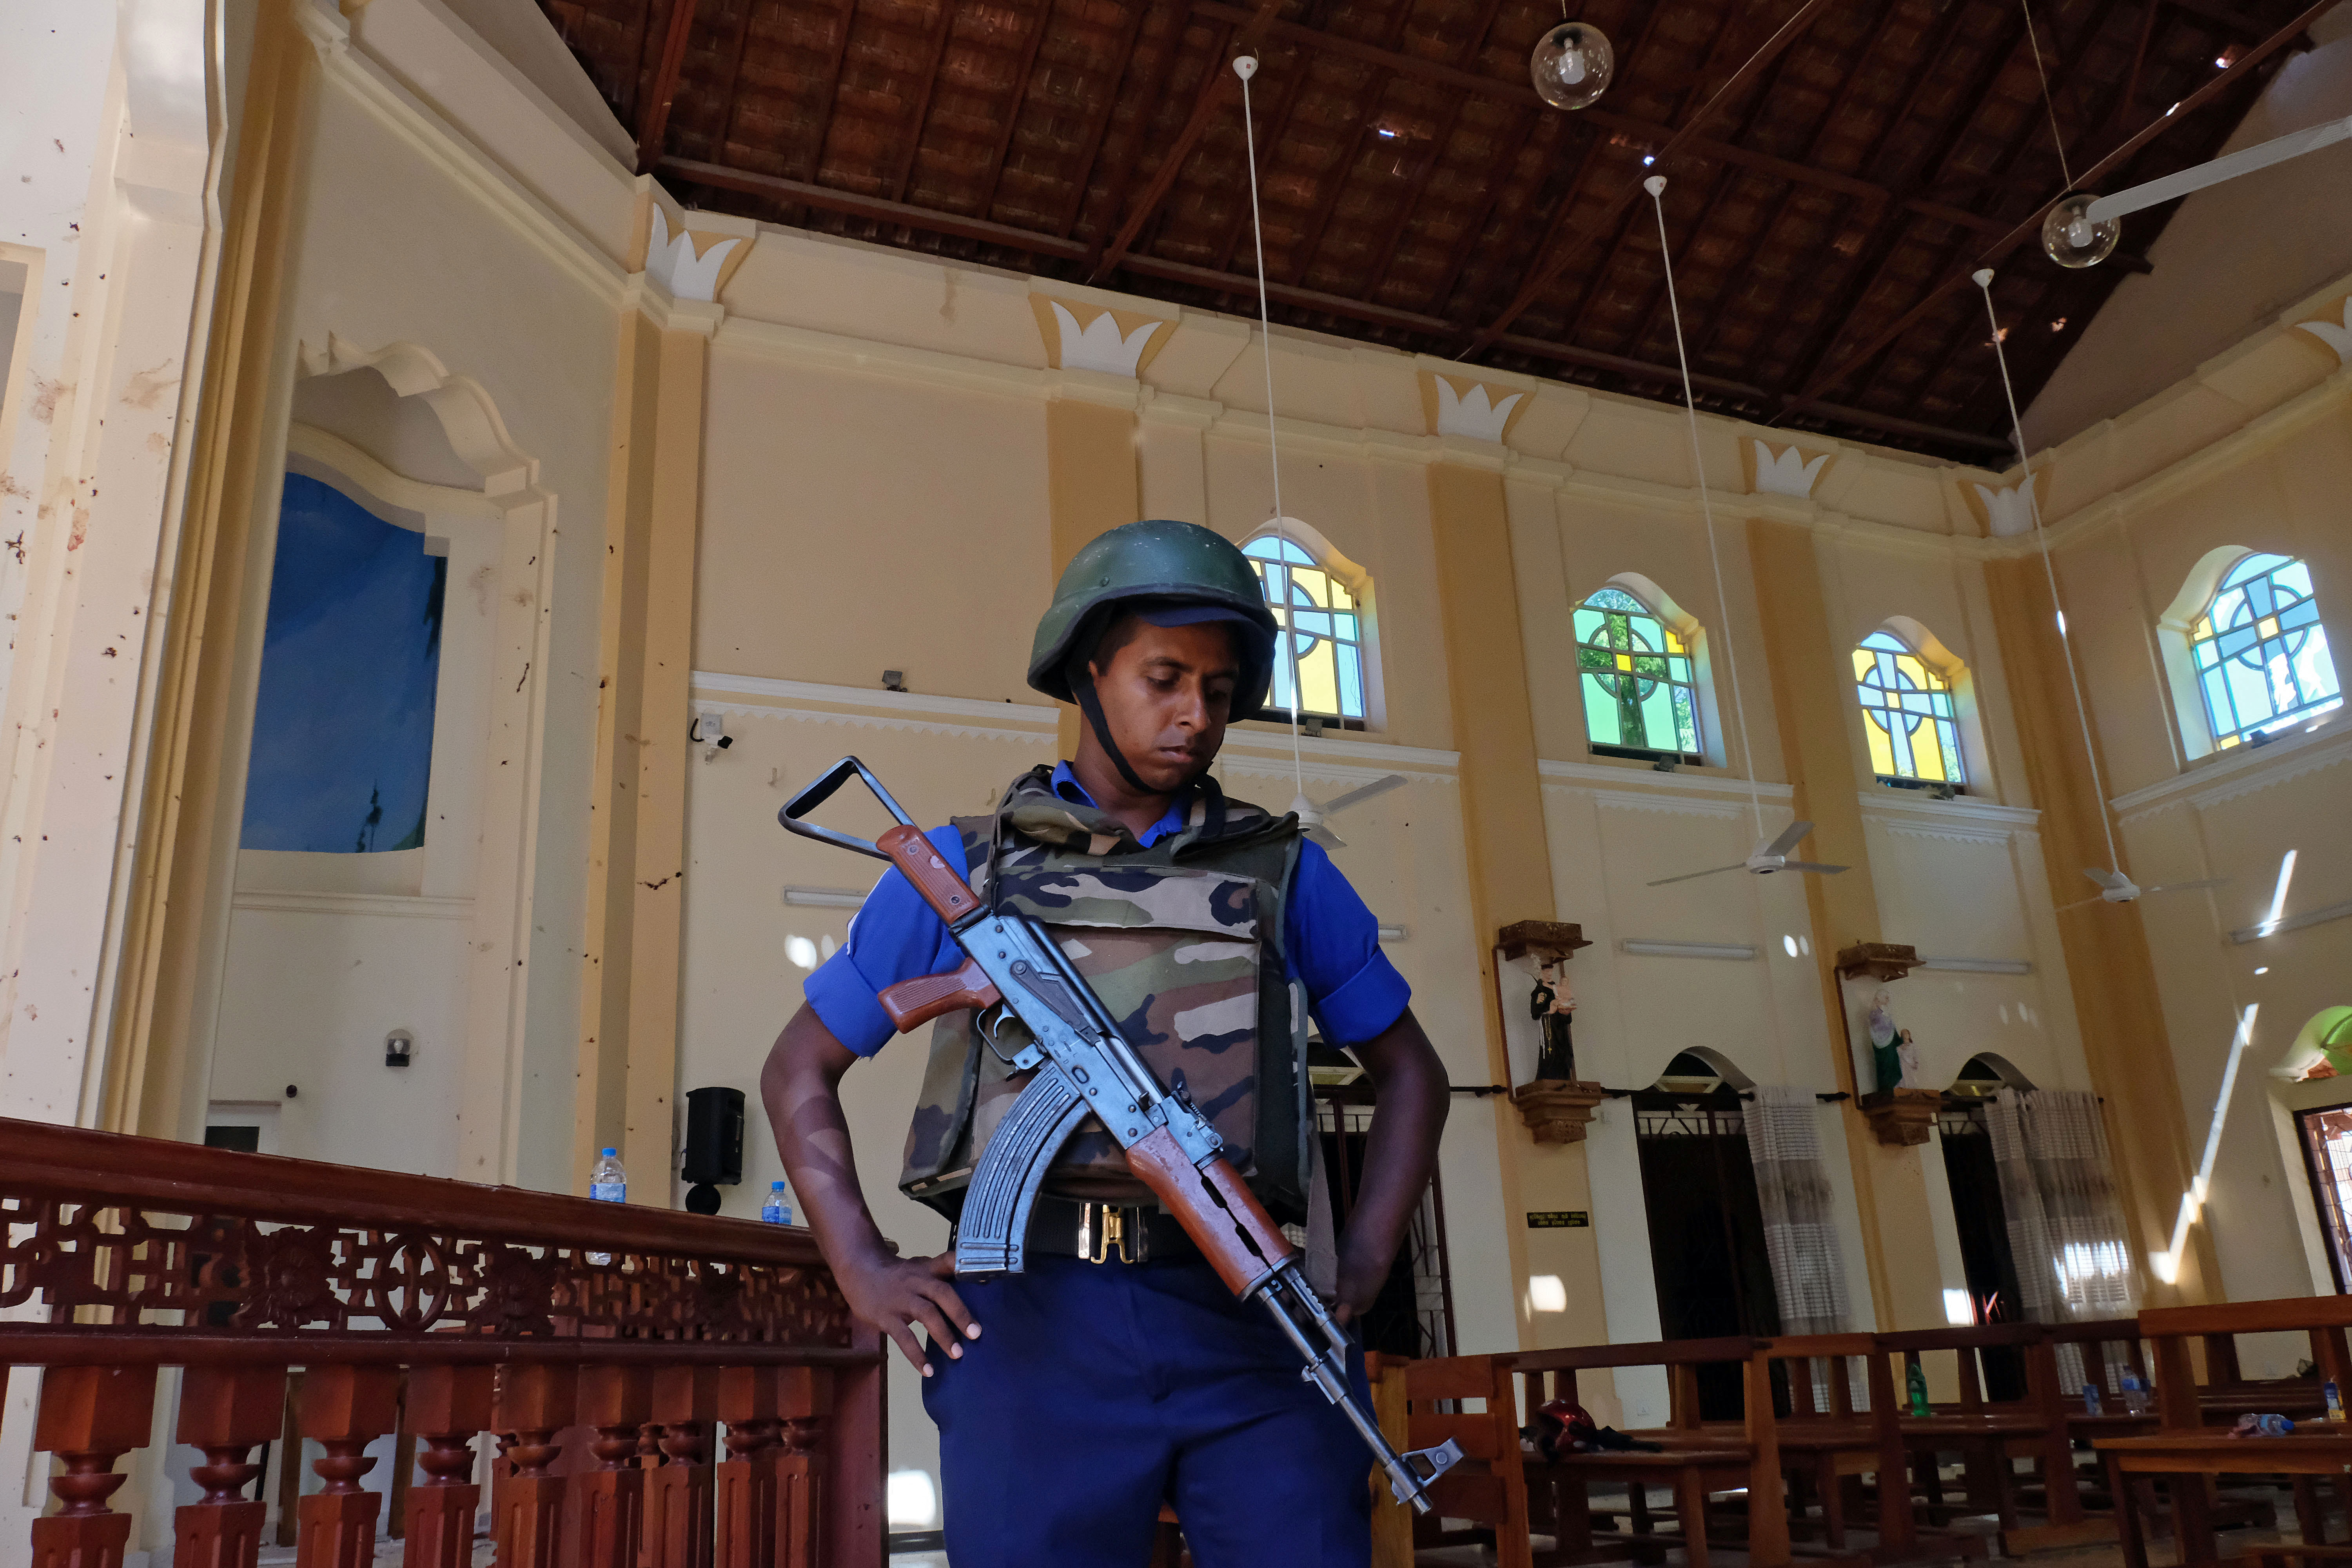 ISIS claims responsibility for Sri Lanka attacks